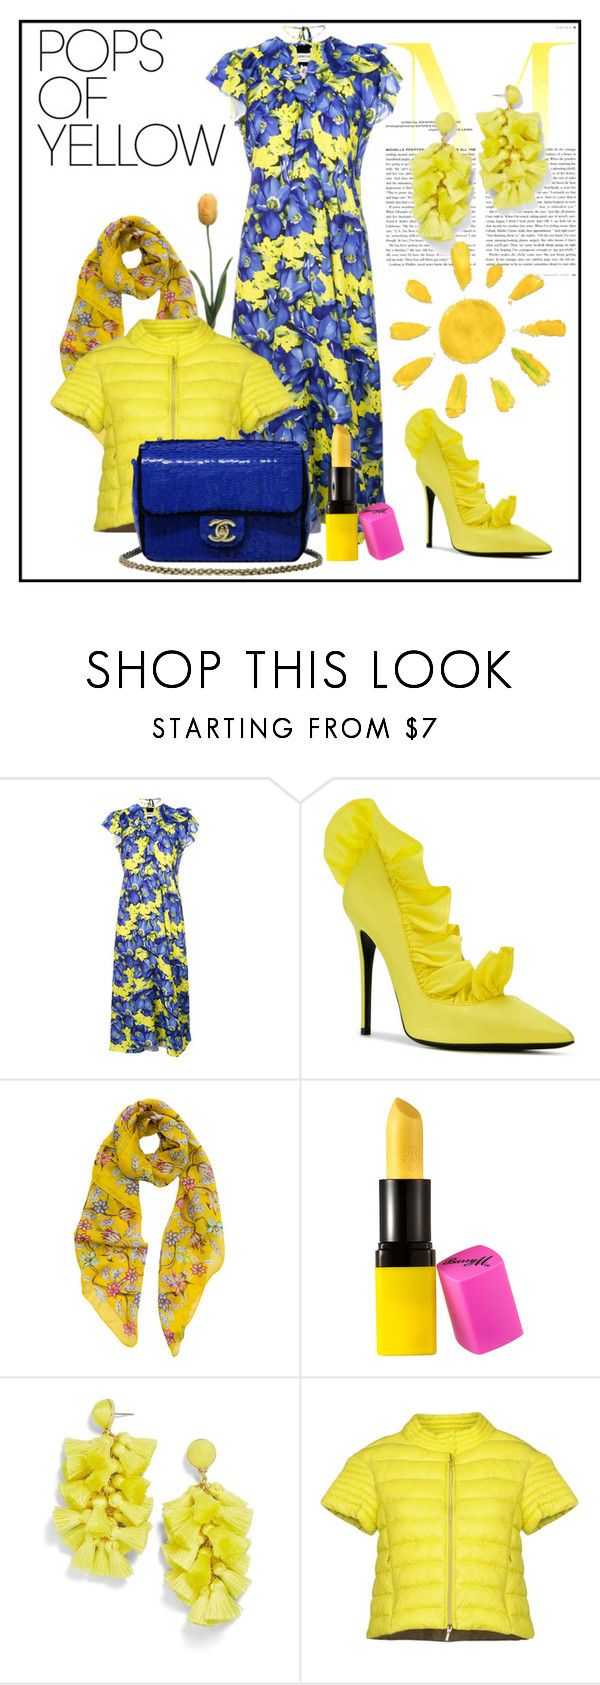 """""""Pops of Yellow"""" by enchantedseptember ❤ liked on Polyvore featuring Balenciaga, MSGM, Scialle, Barry M, BaubleBar, Puzzle Goose and Chanel"""